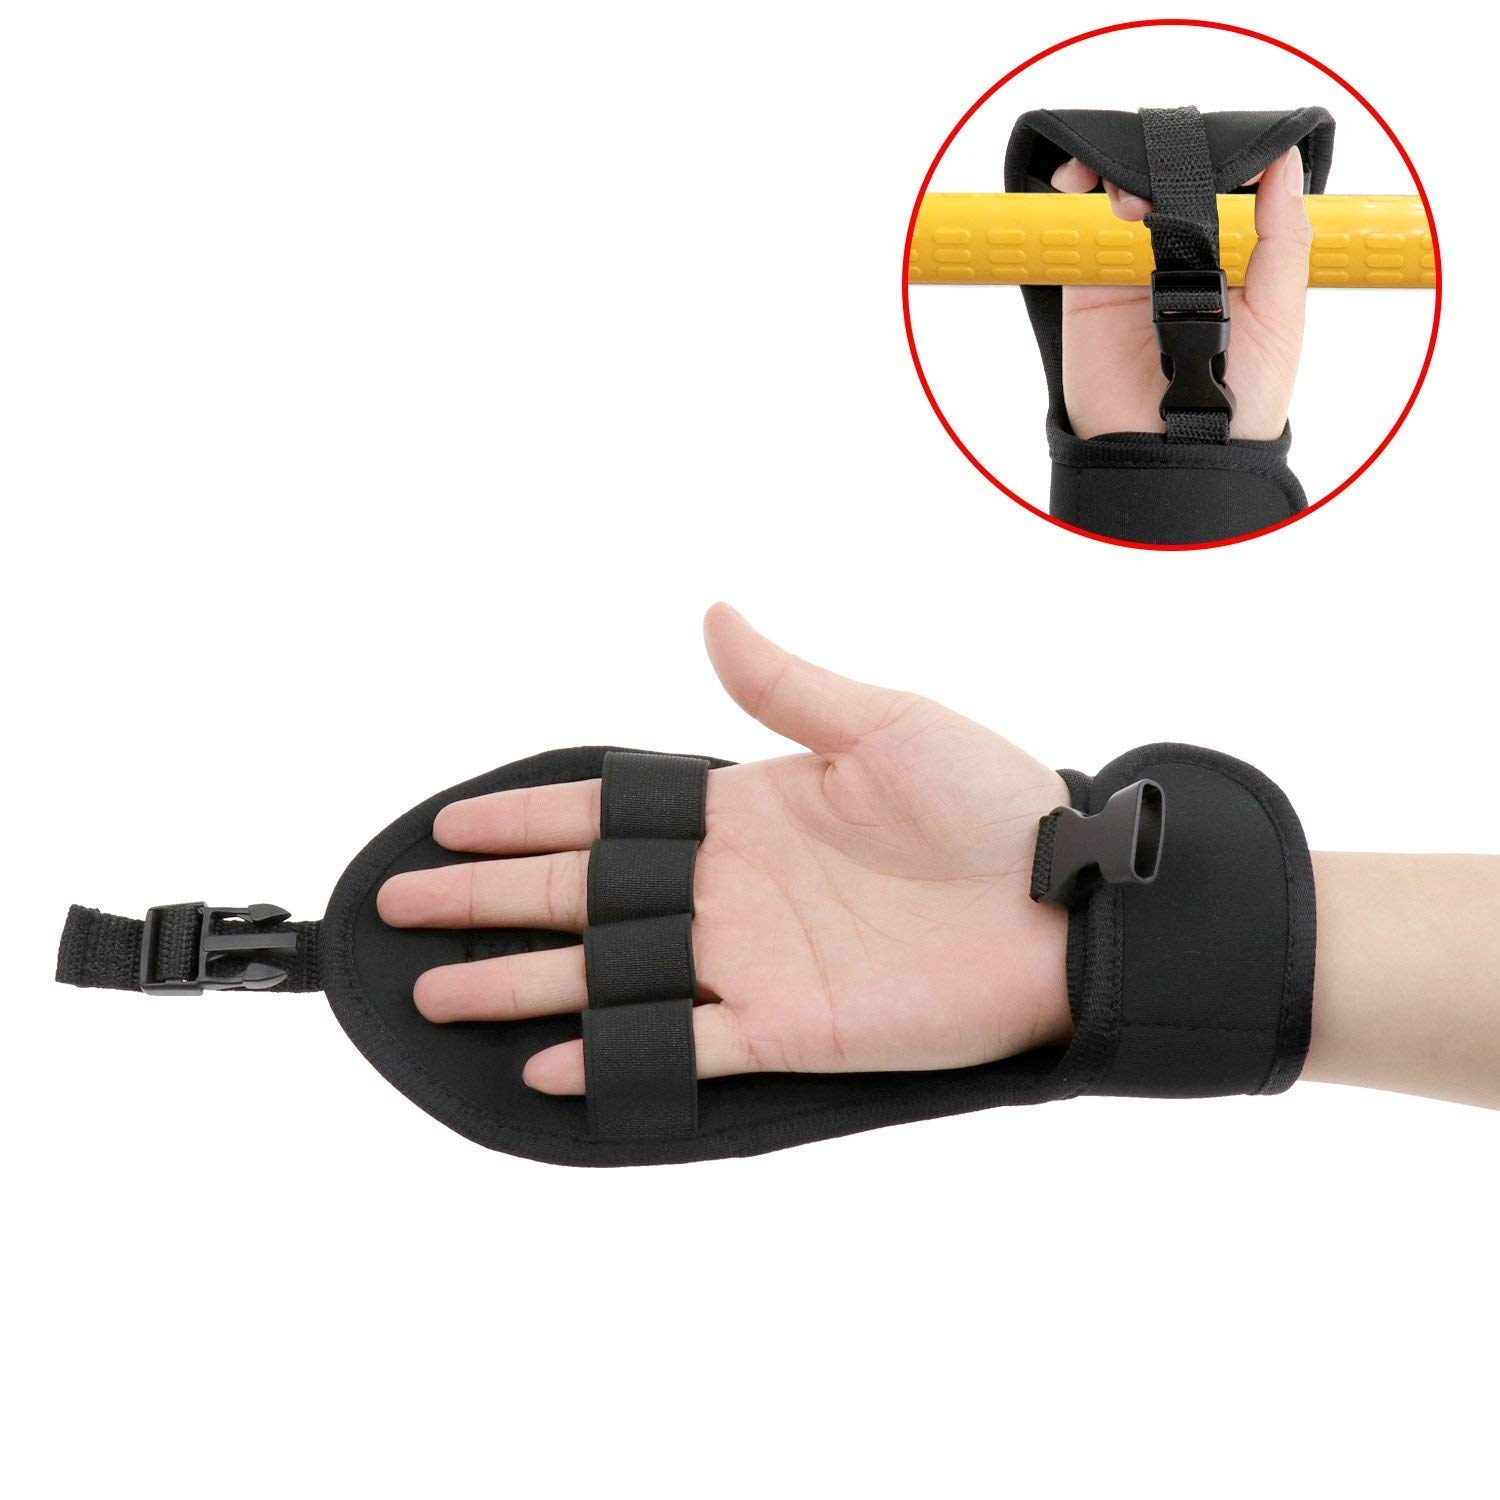 Biange Finger Splint Brace Ability, Rehabilitation Finger Gloves with stroke Hand Splint, Use for Brace Elderly Fist Stroke Hemiplegia Hand Training, Single Hand Grip Exercise (Black)